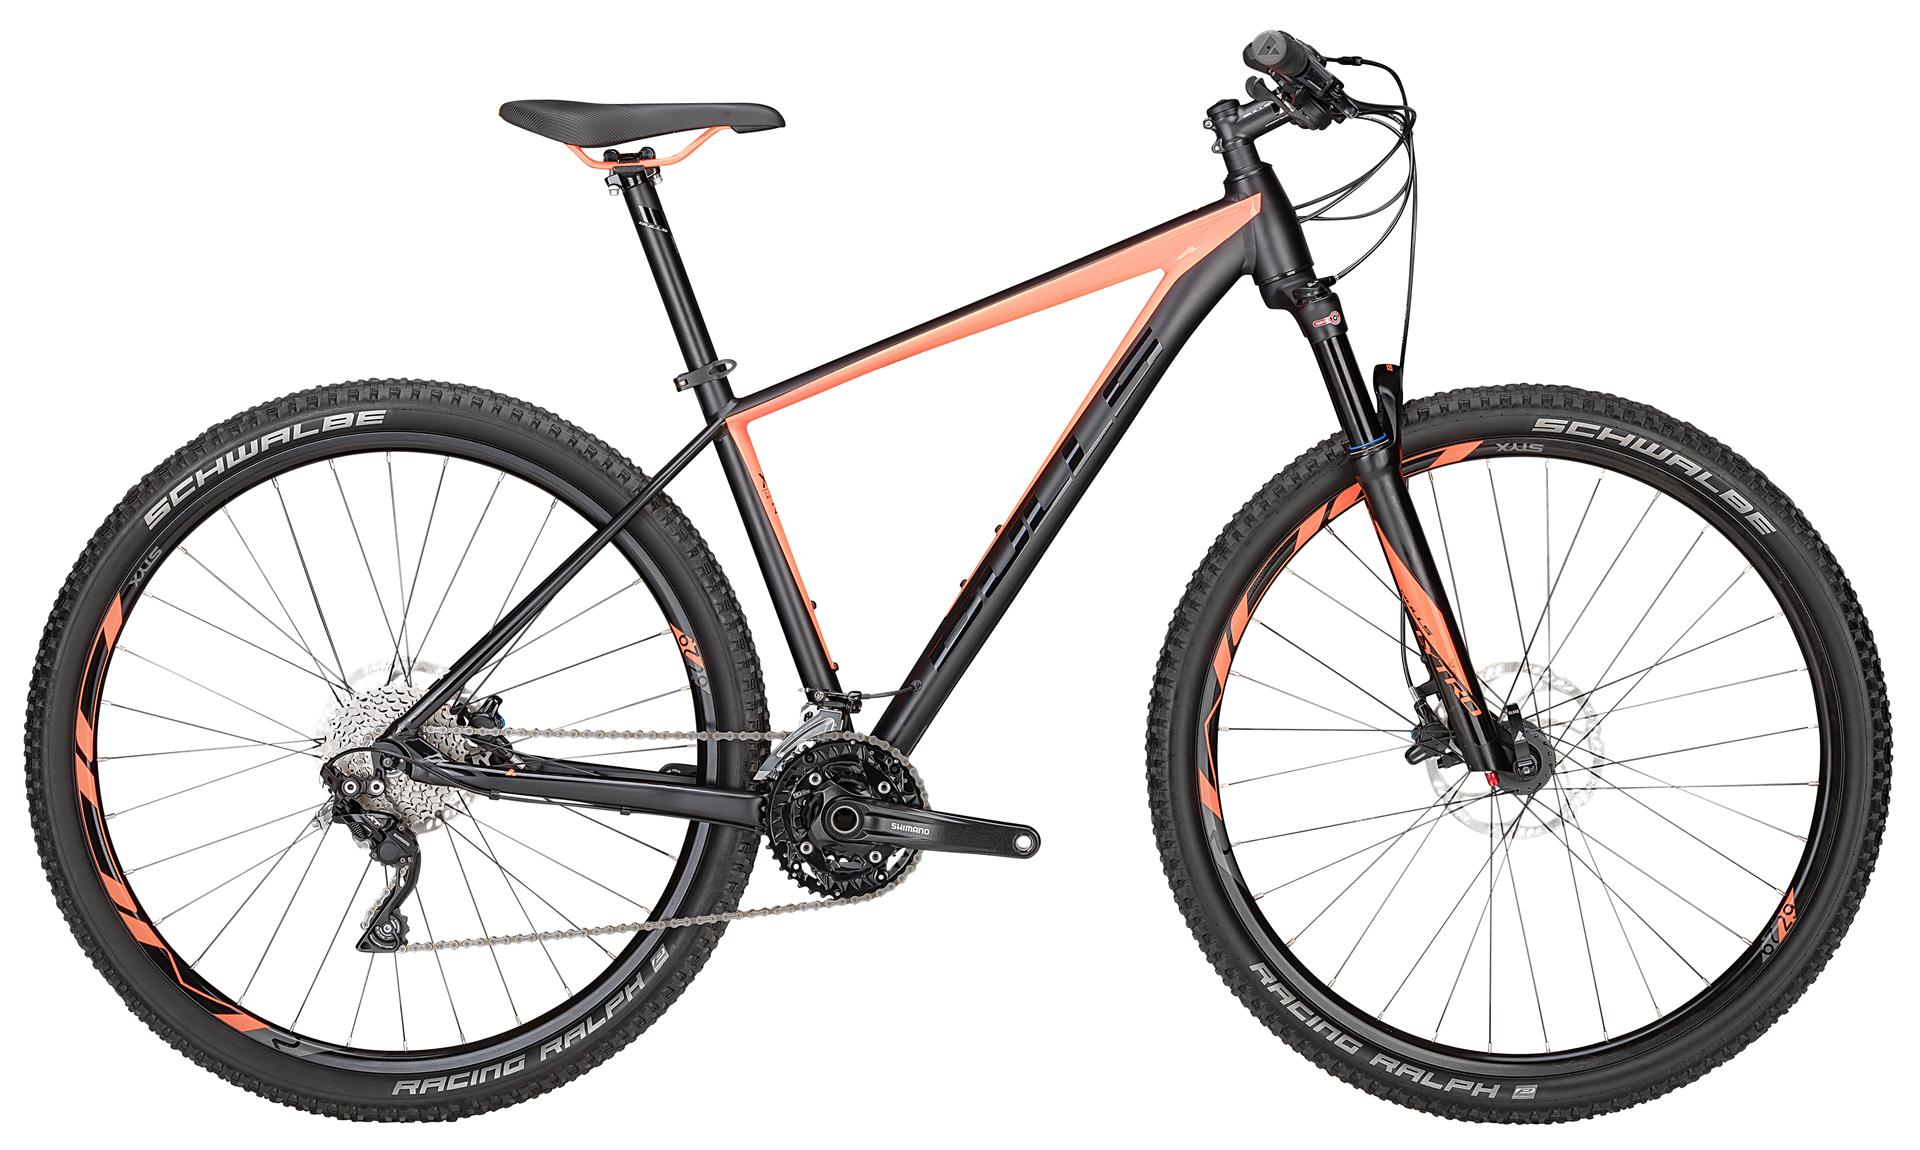 Bulls Copperhead 3 29 schwarz-orange 2018 46cm